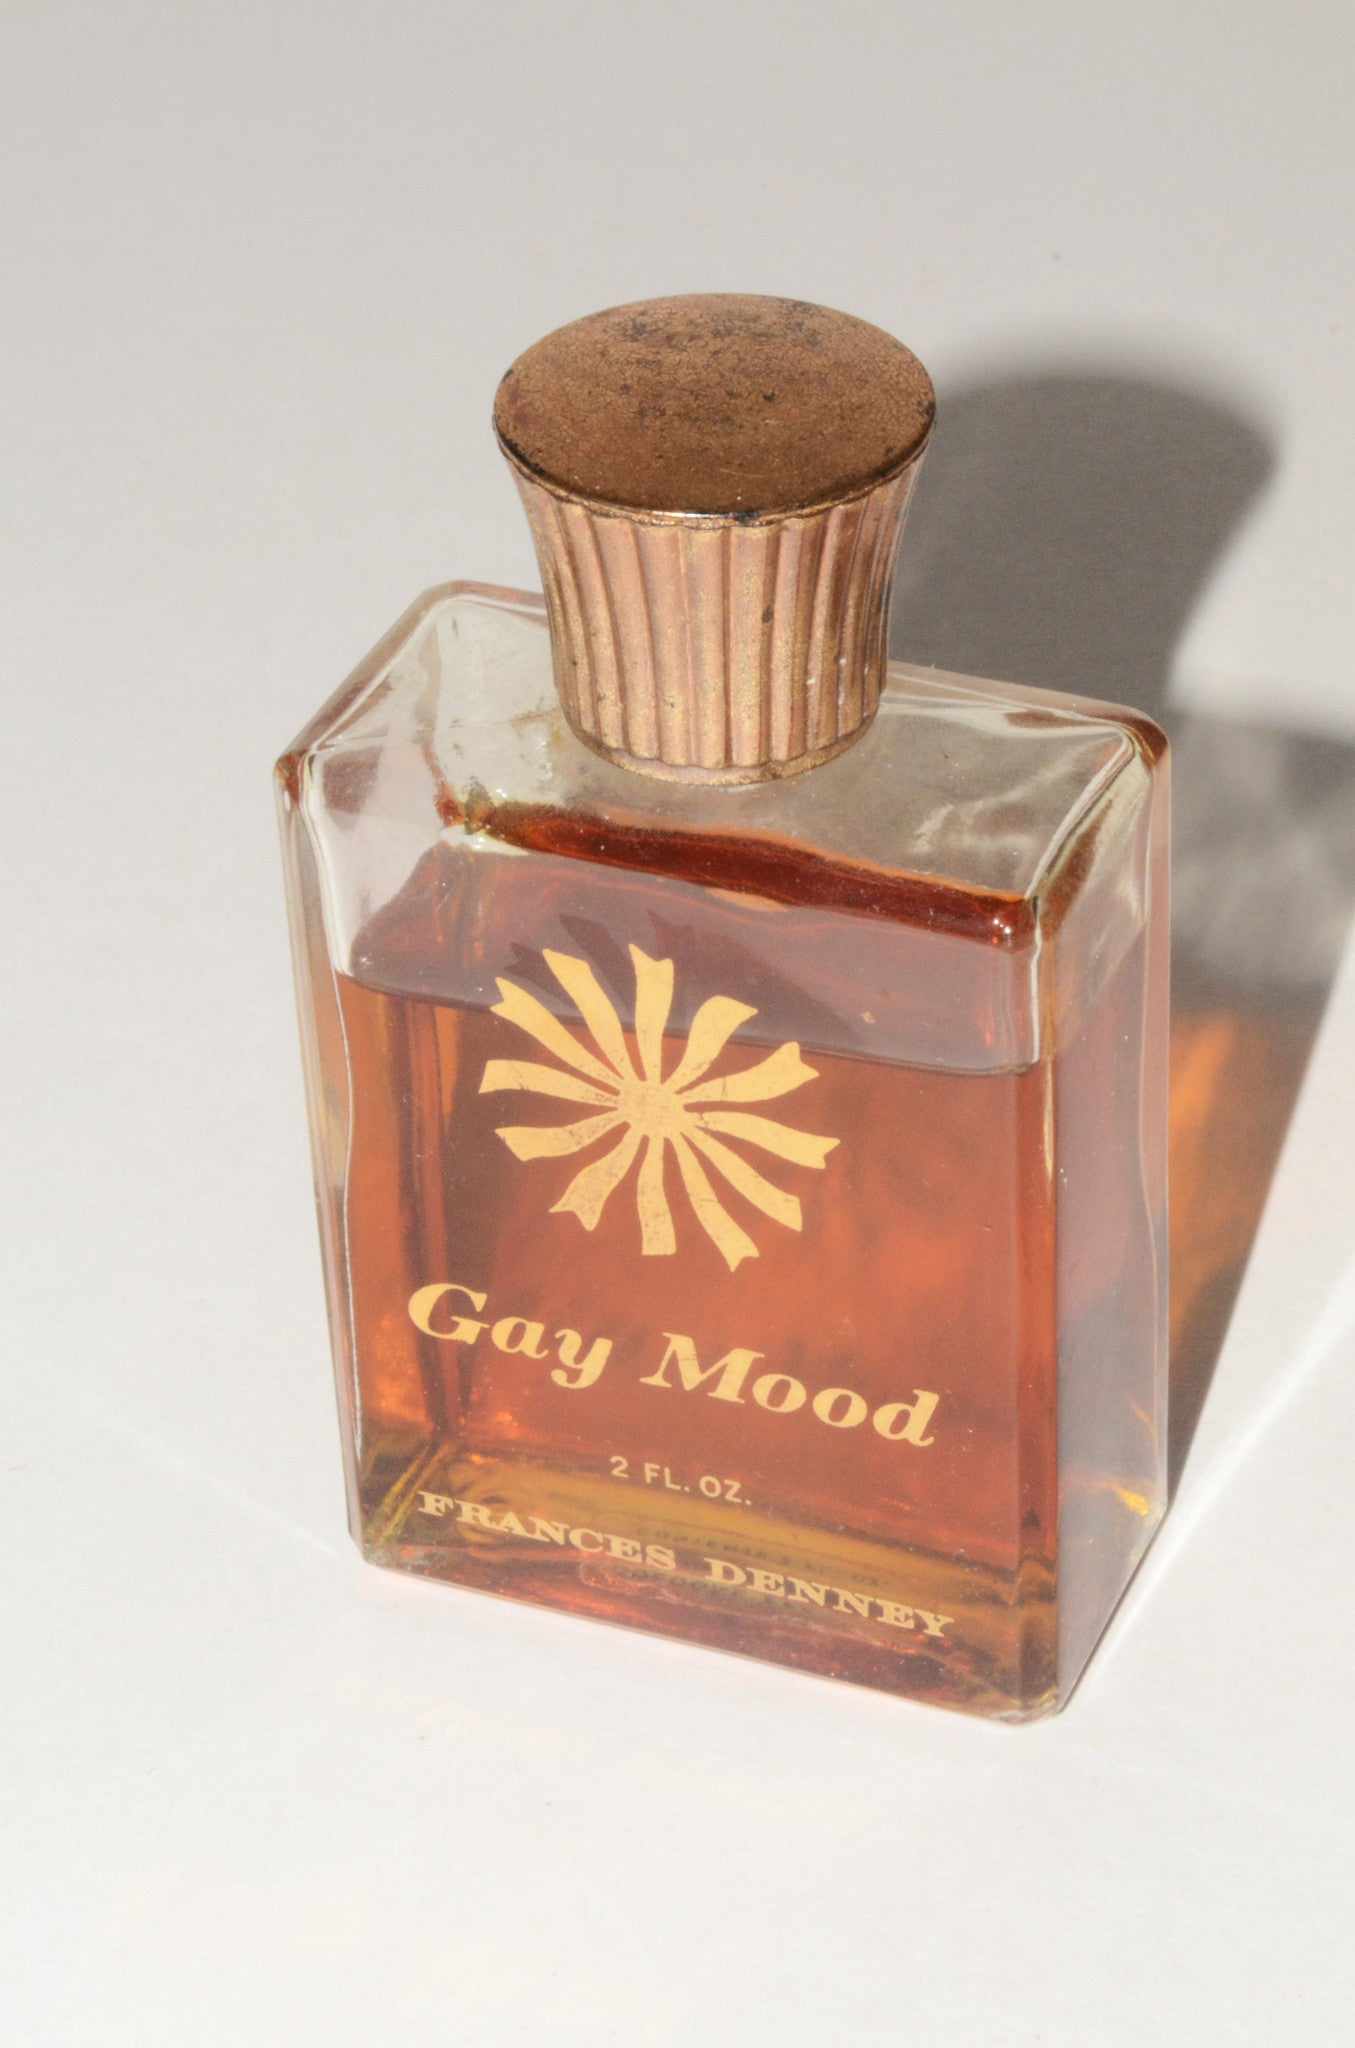 Vintage Gay Mood Cologne By Frances Denney